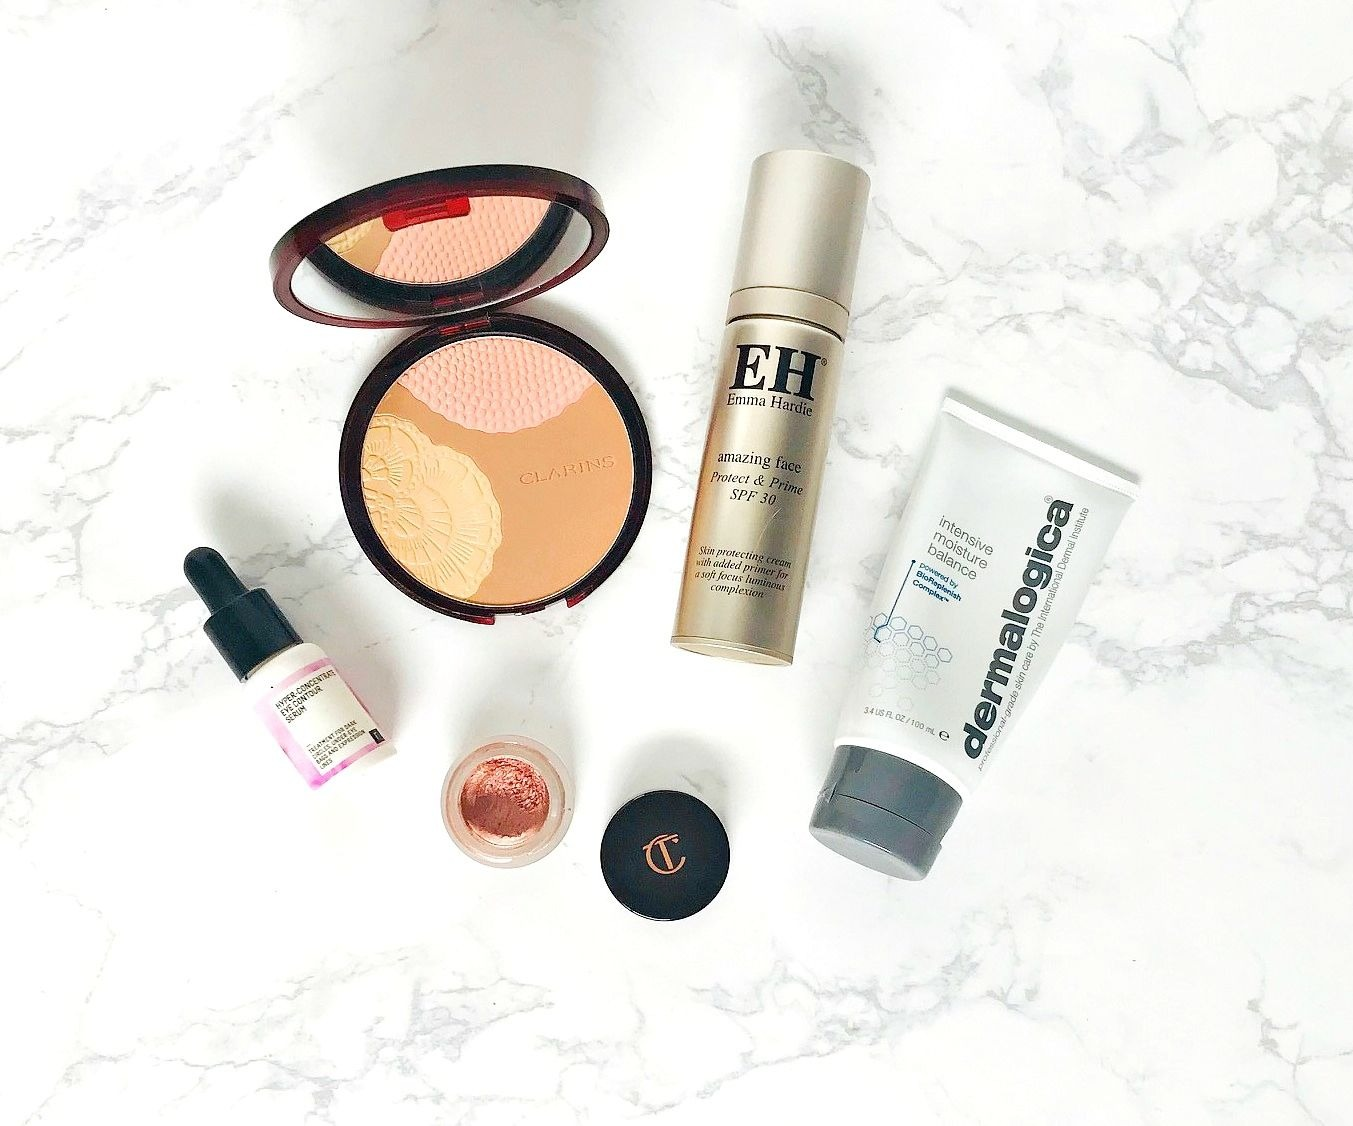 Dermalogica Intensive  Moisture Balance, Charlotte Tilbury Eyes to Mesmerise, Emma Hardie Amazing Face protect & Prime, Freshly Cosmetics Hyper Concentrate Eye Contour Serum, Clarins Bronzing Compact 001 Sunset Glow